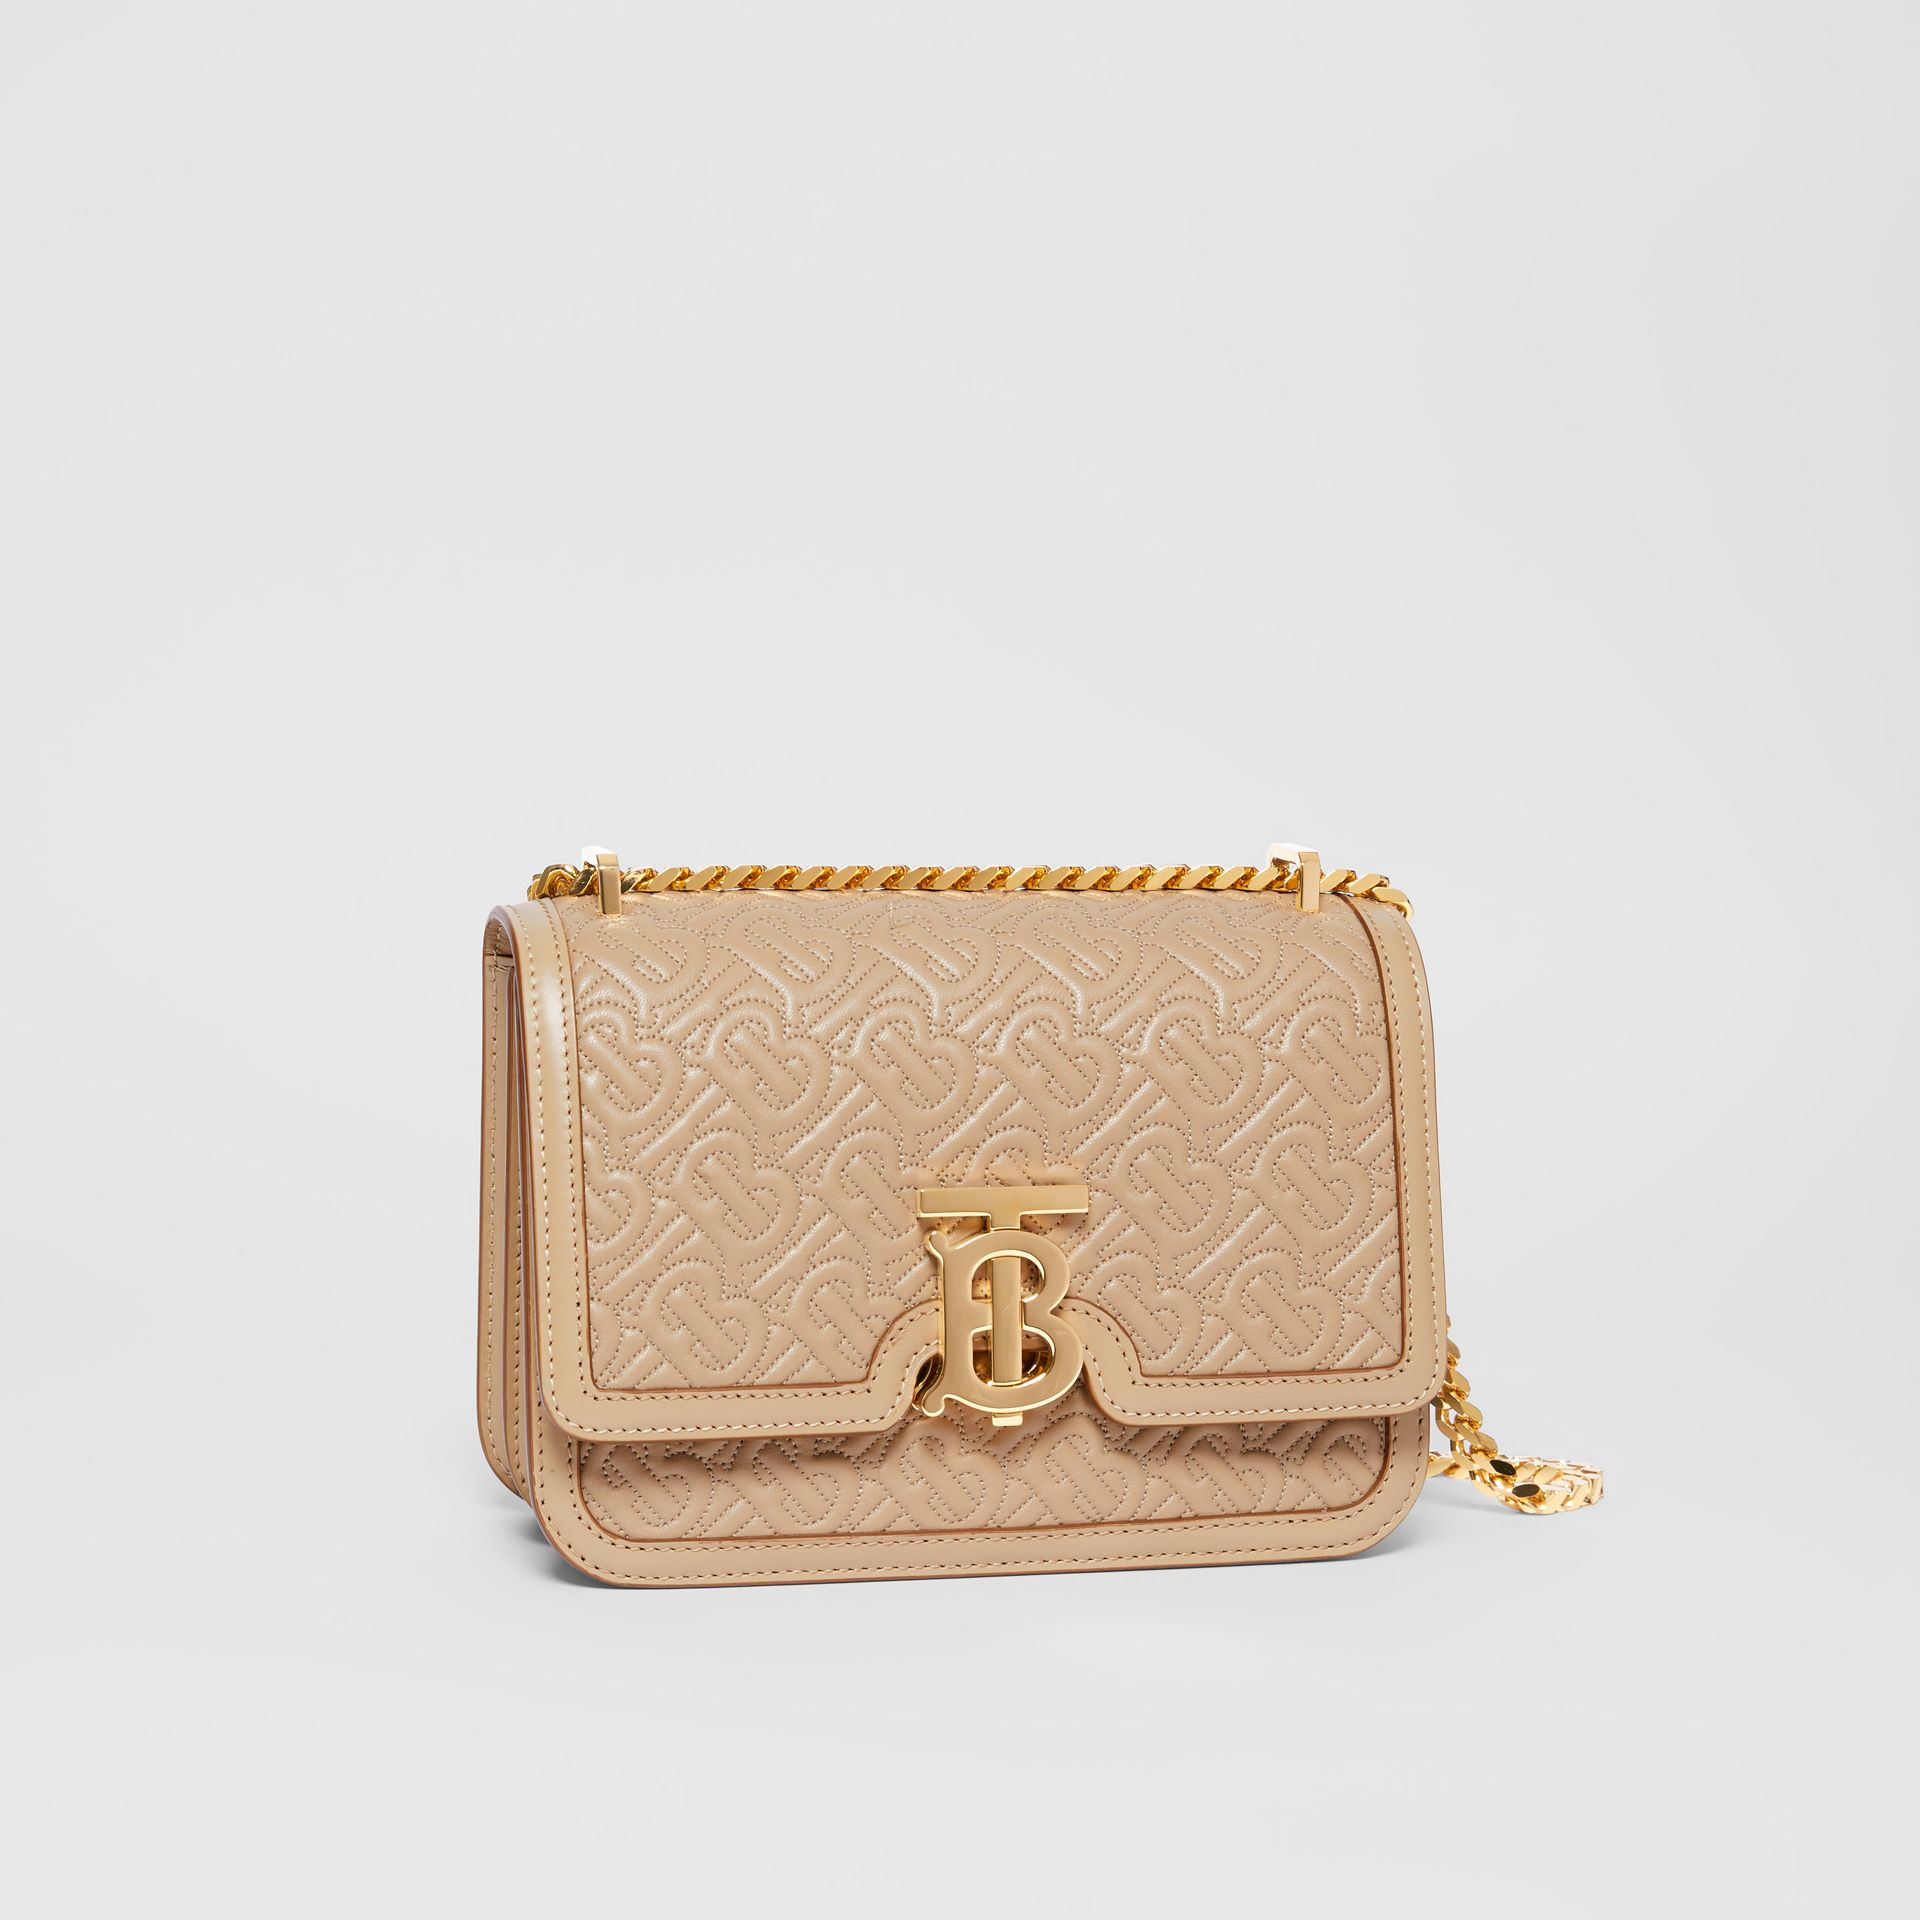 Small Quilted Monogram Lambskin TB Bag in Honey - Women | Burberry - gallery image 6